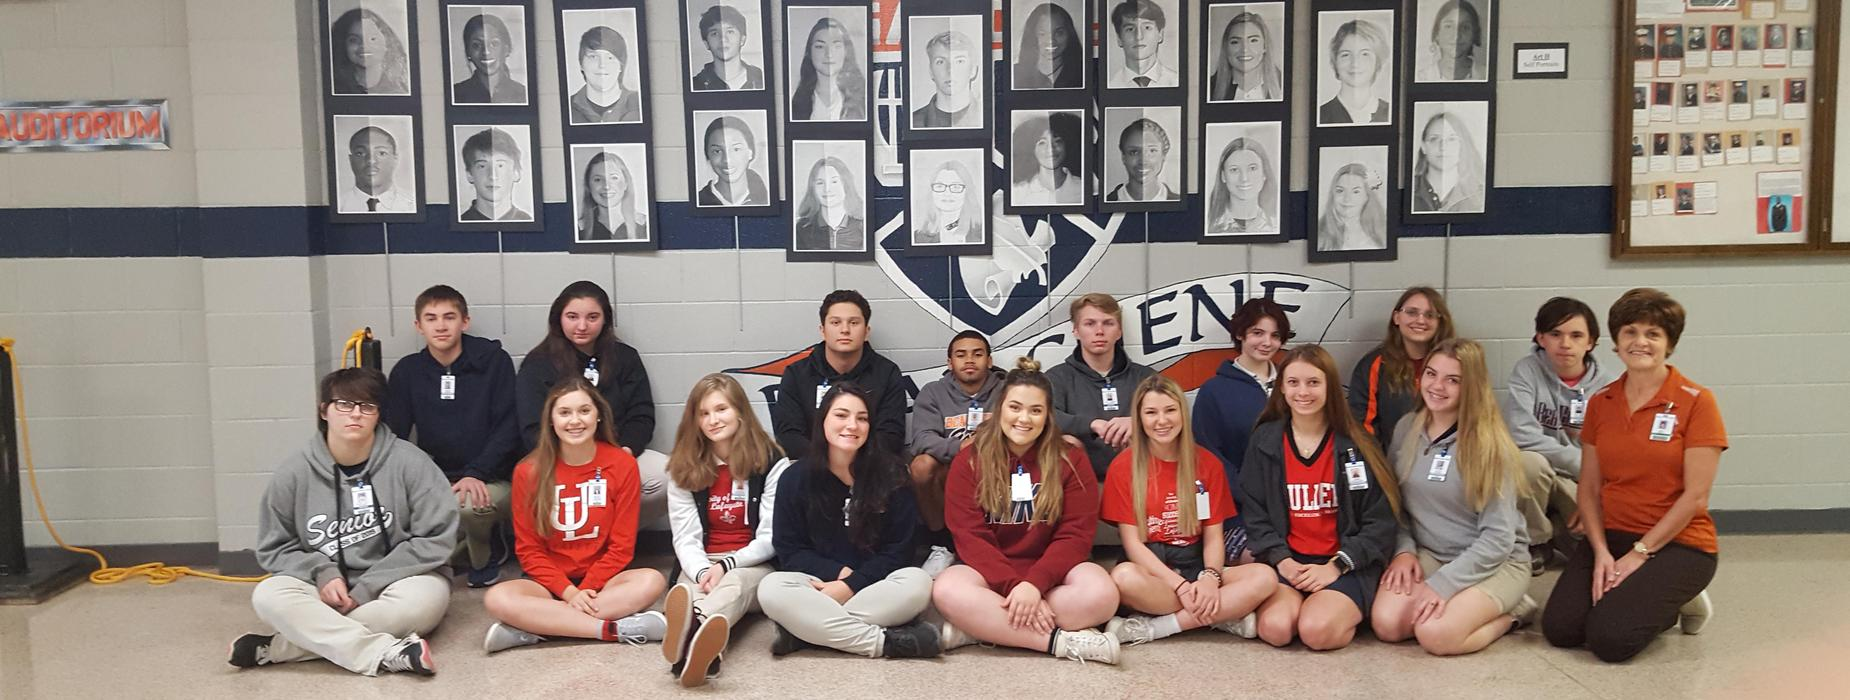 Mrs. Knott's 1st Hour Art II students